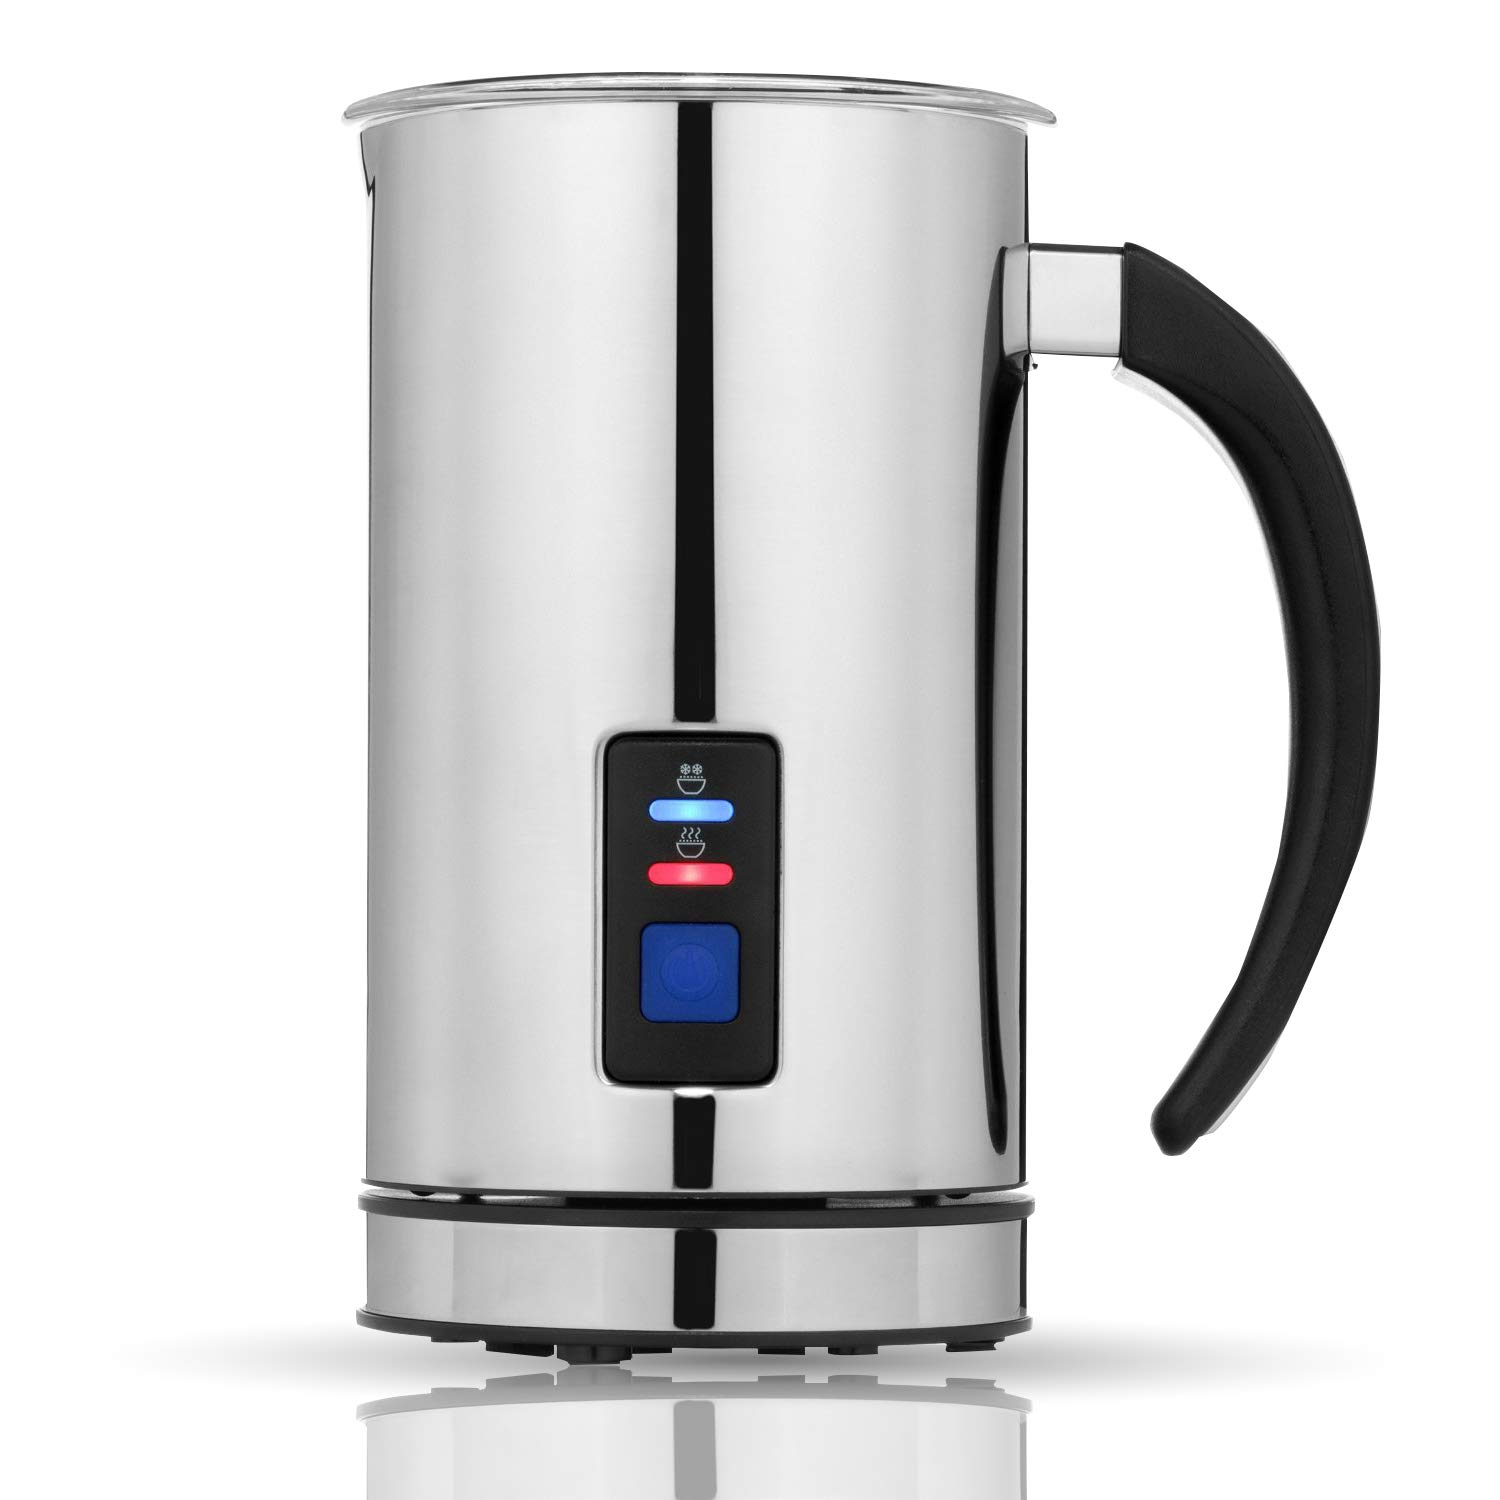 Cappuccino Flexzion Electric Milk Frother and Heater Black Espresso Automatic Hot /& Cold Milk Foamer Steamer Throther Maker Warmer Machine with Non-Stick Coating for Coffee Creamer Latte